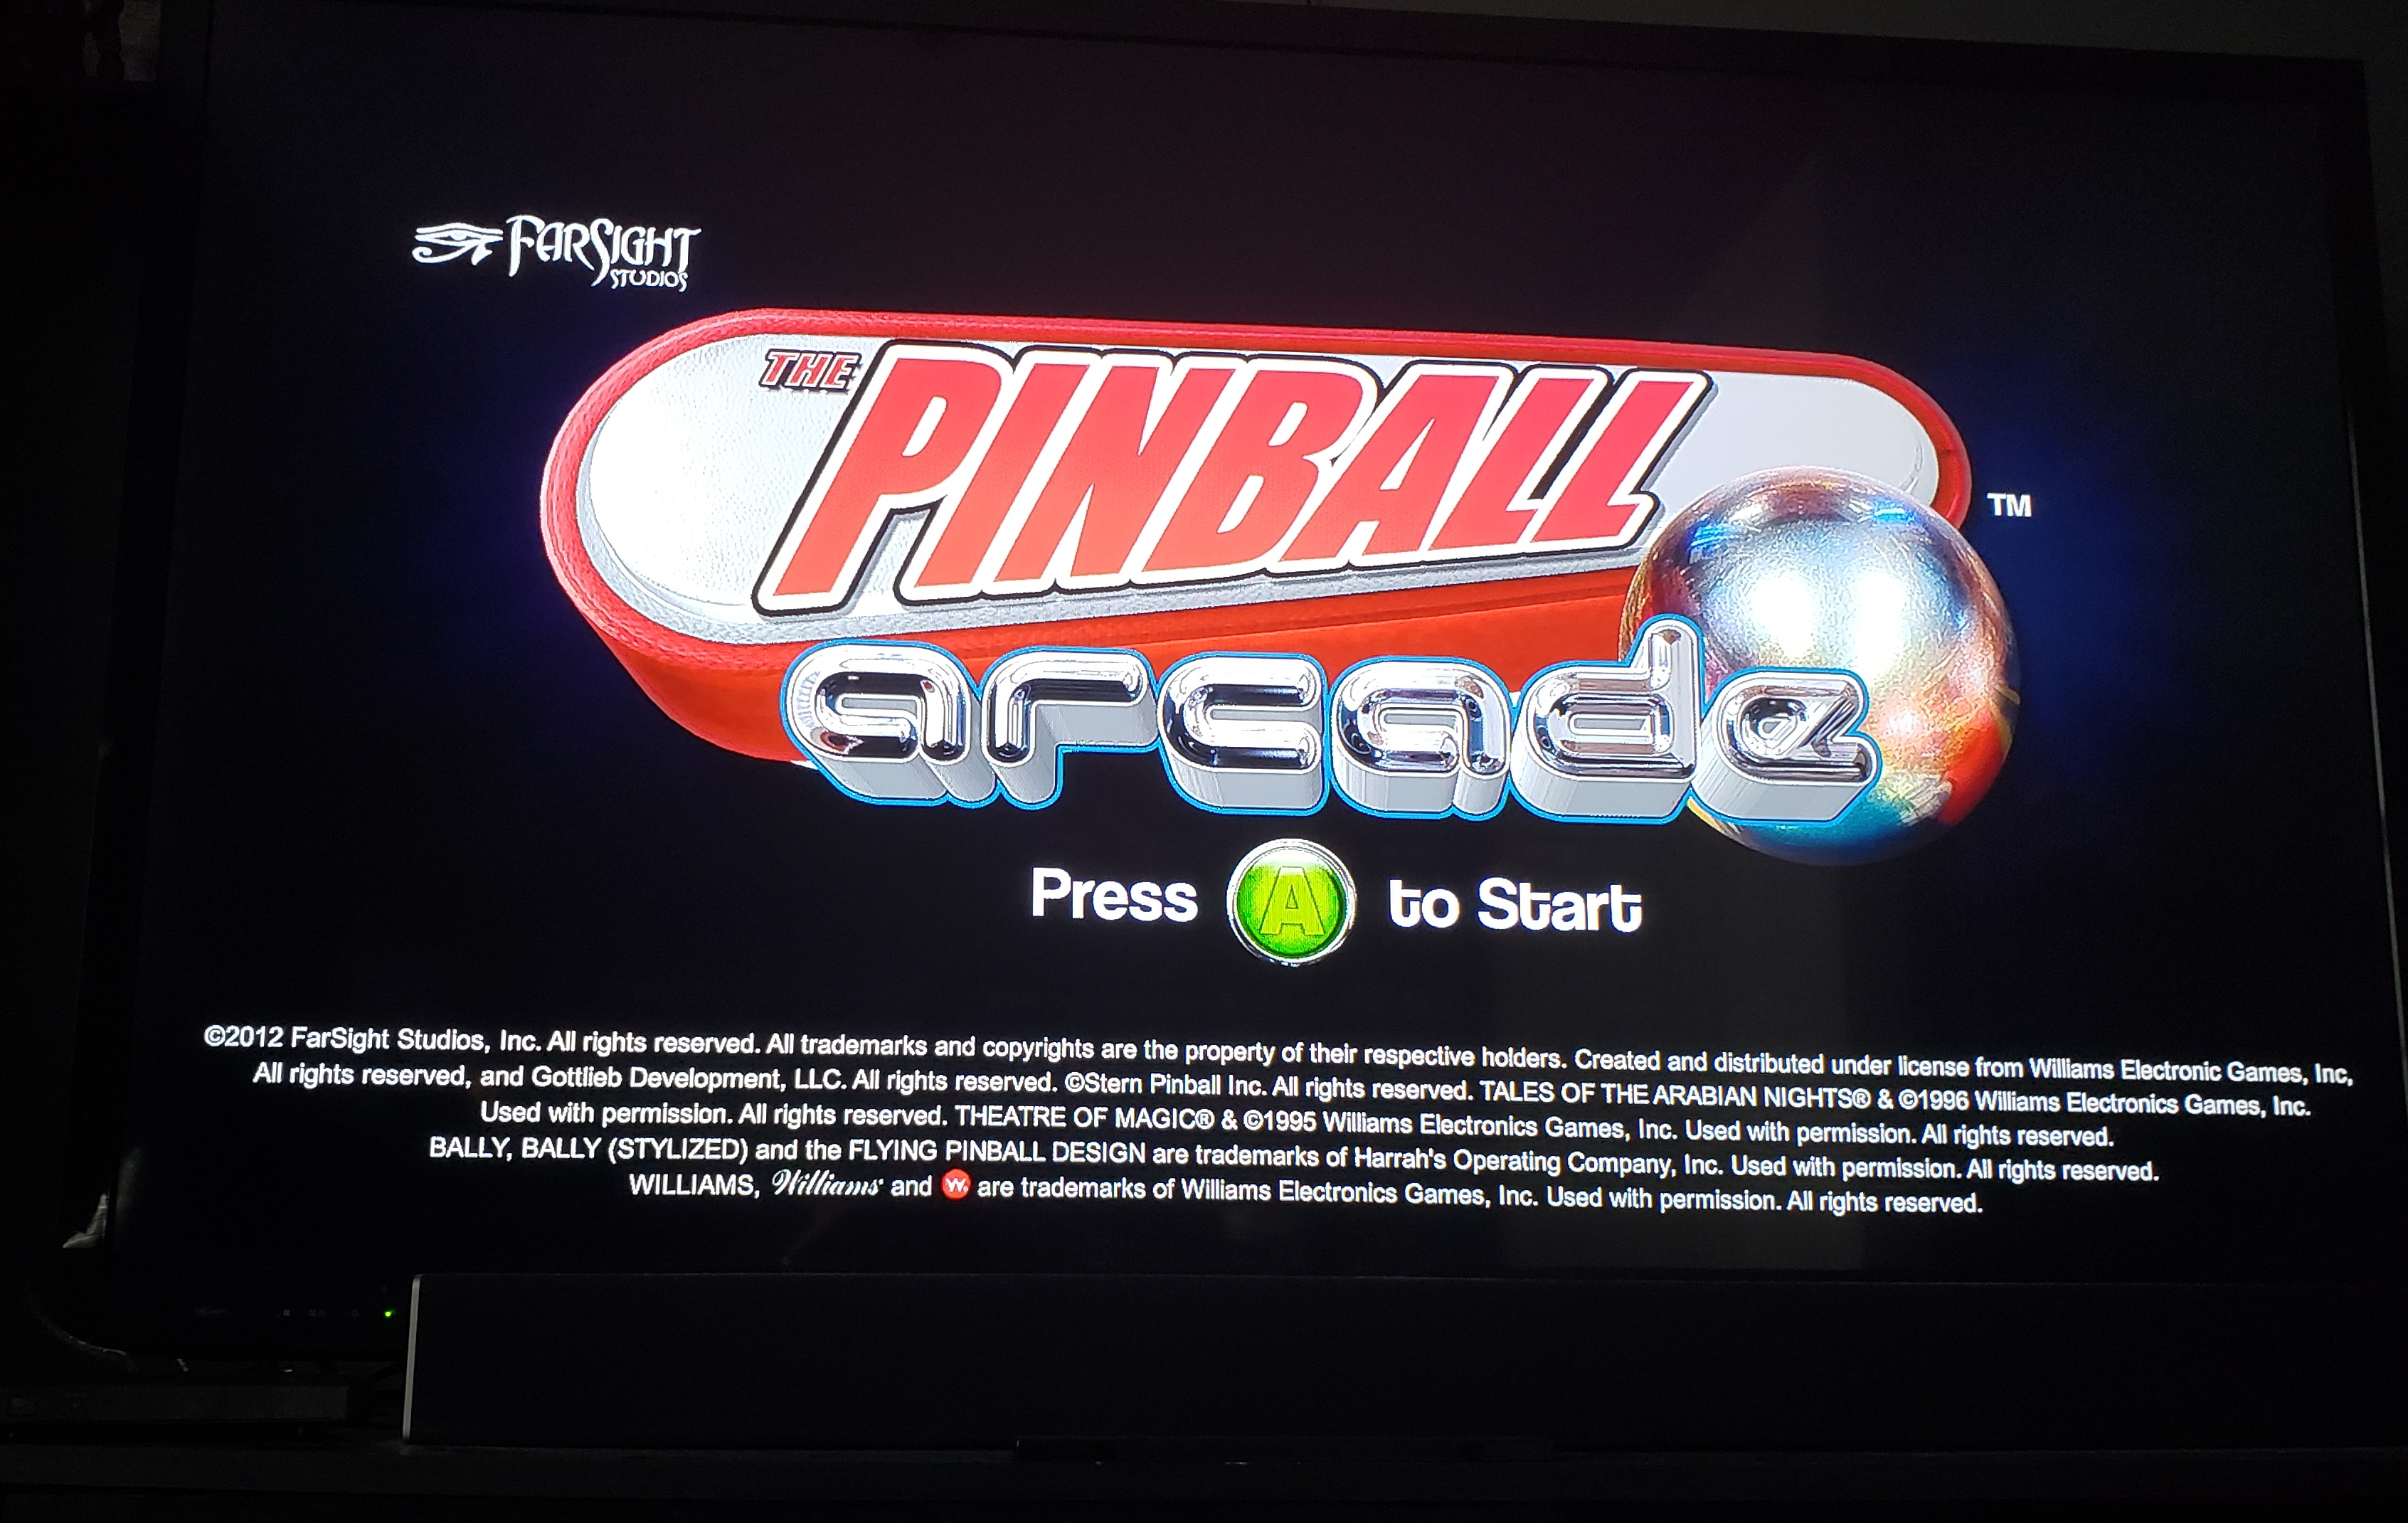 Stryker: Pinball Arcade: Medieval Madness (Xbox 360) 234,849,860 points on 2019-01-13 14:19:08